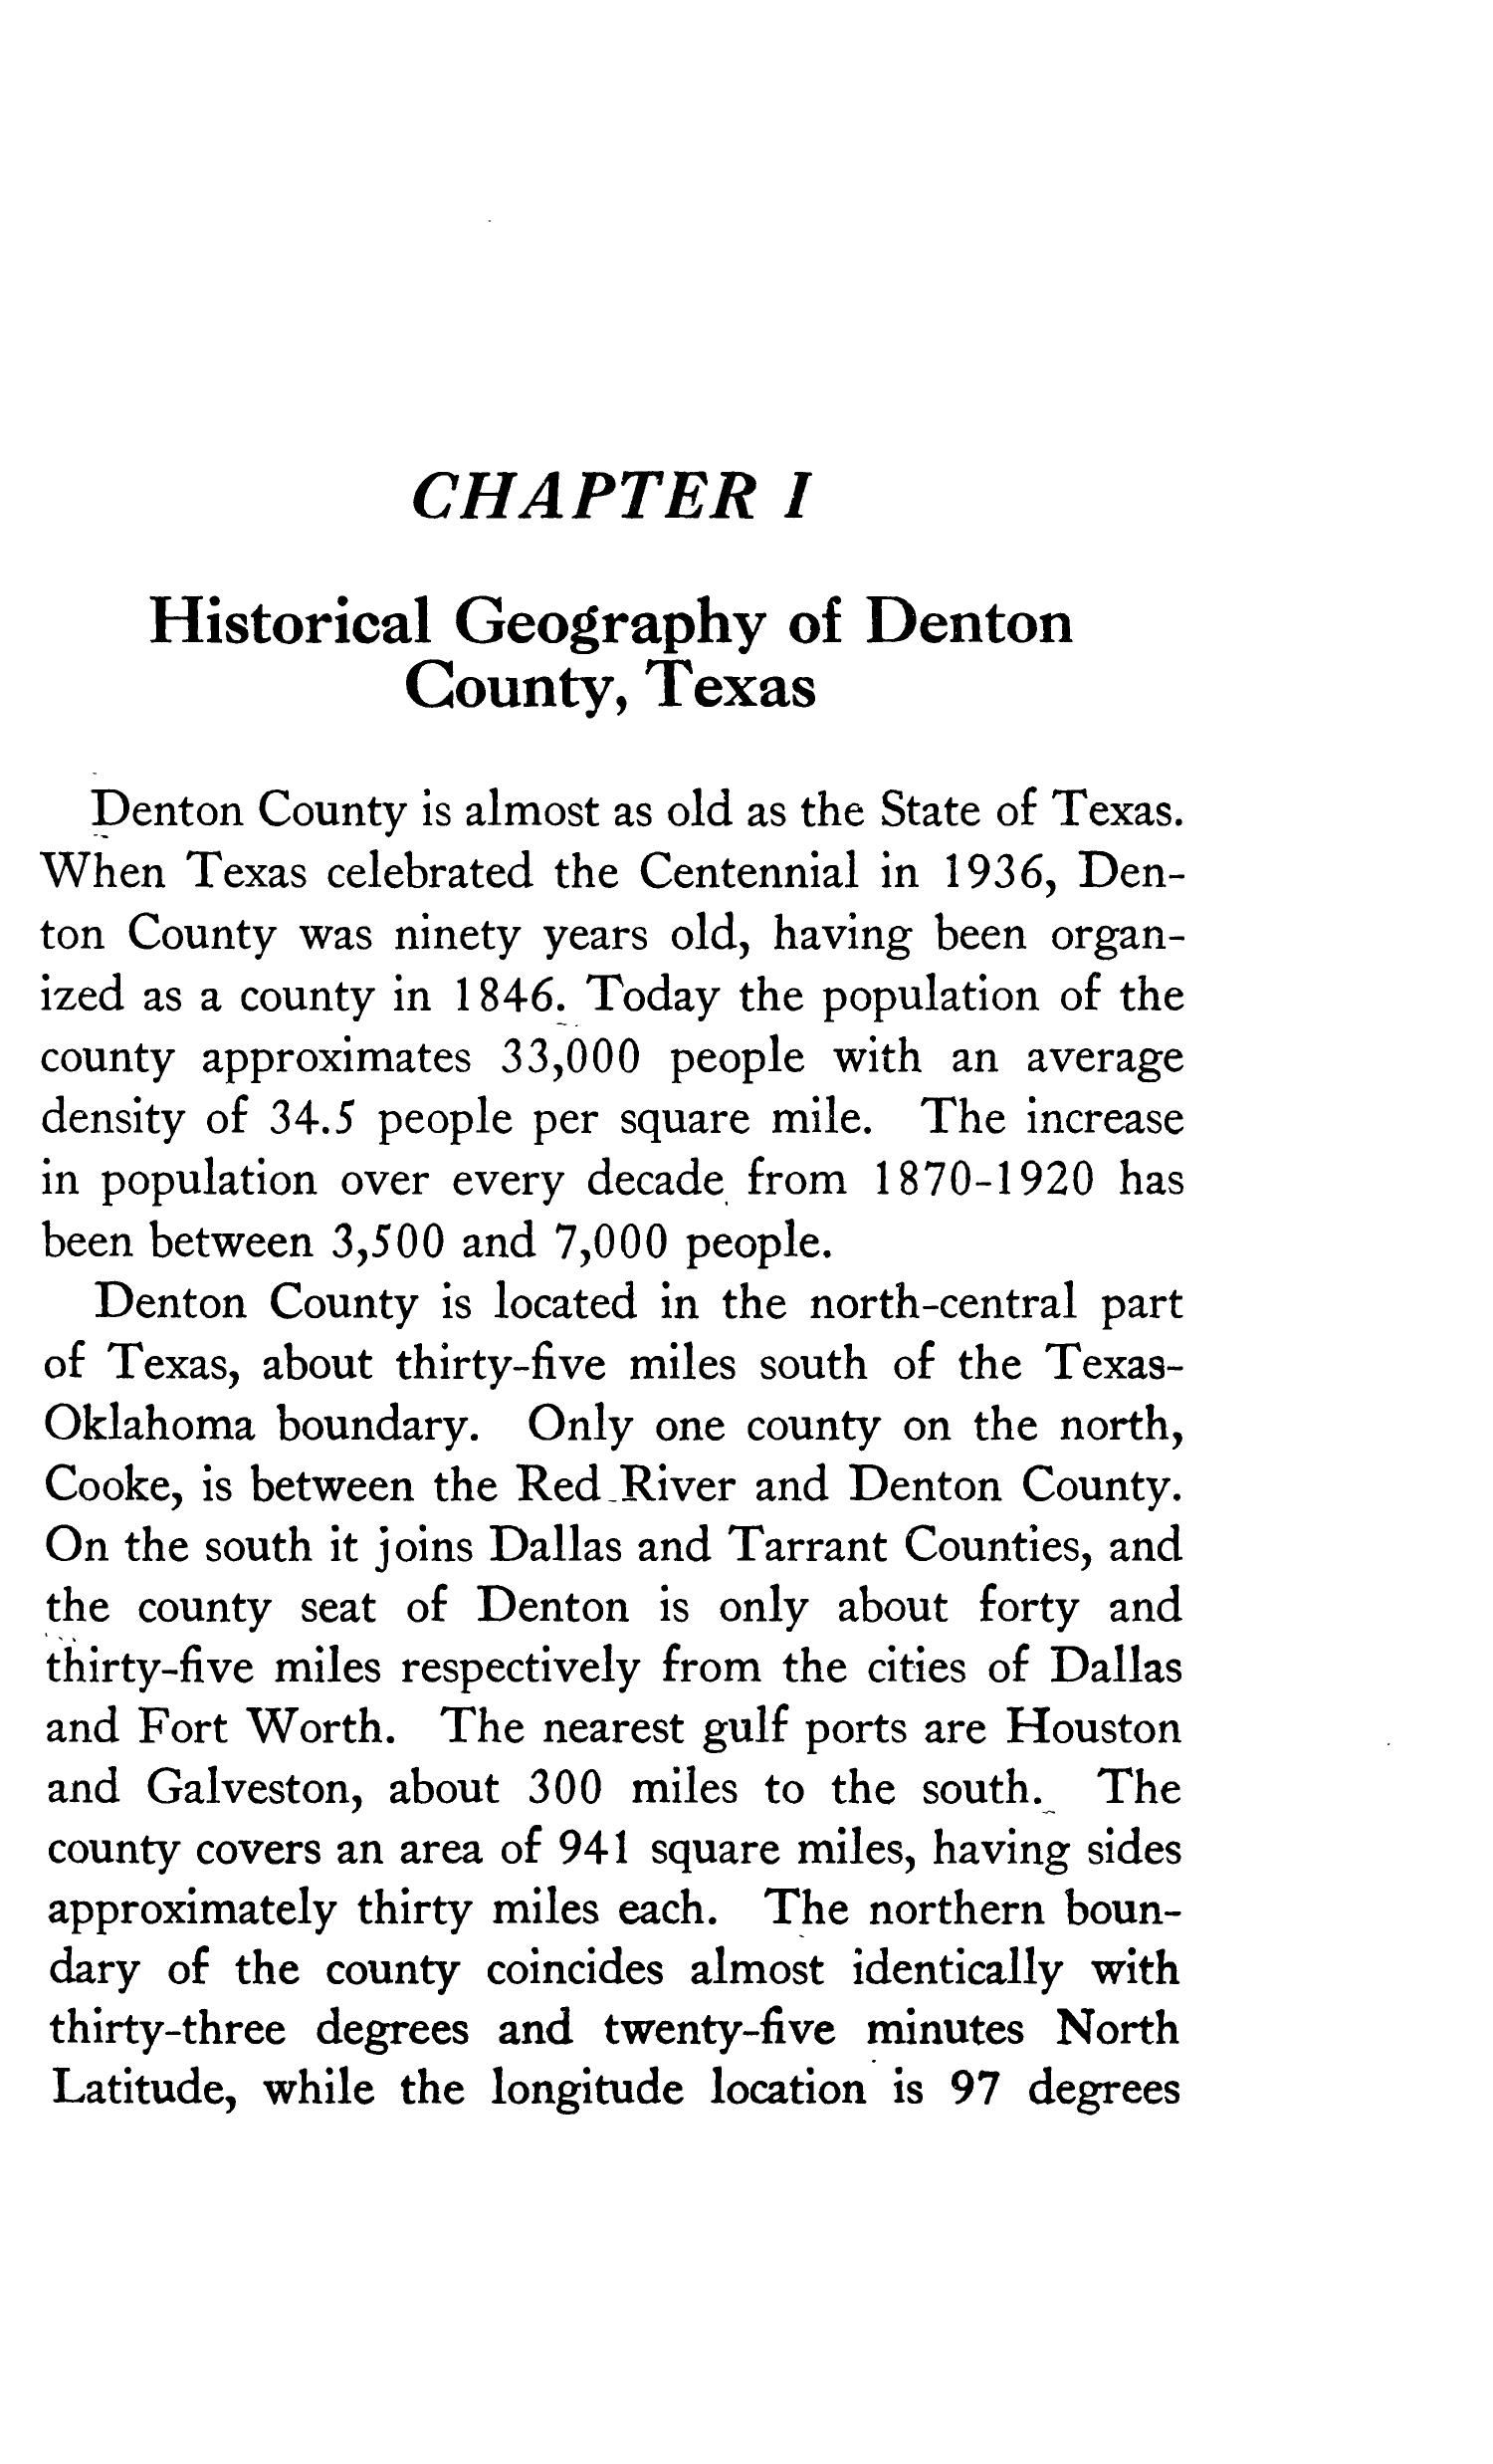 Geography of Denton County                                                                                                      1